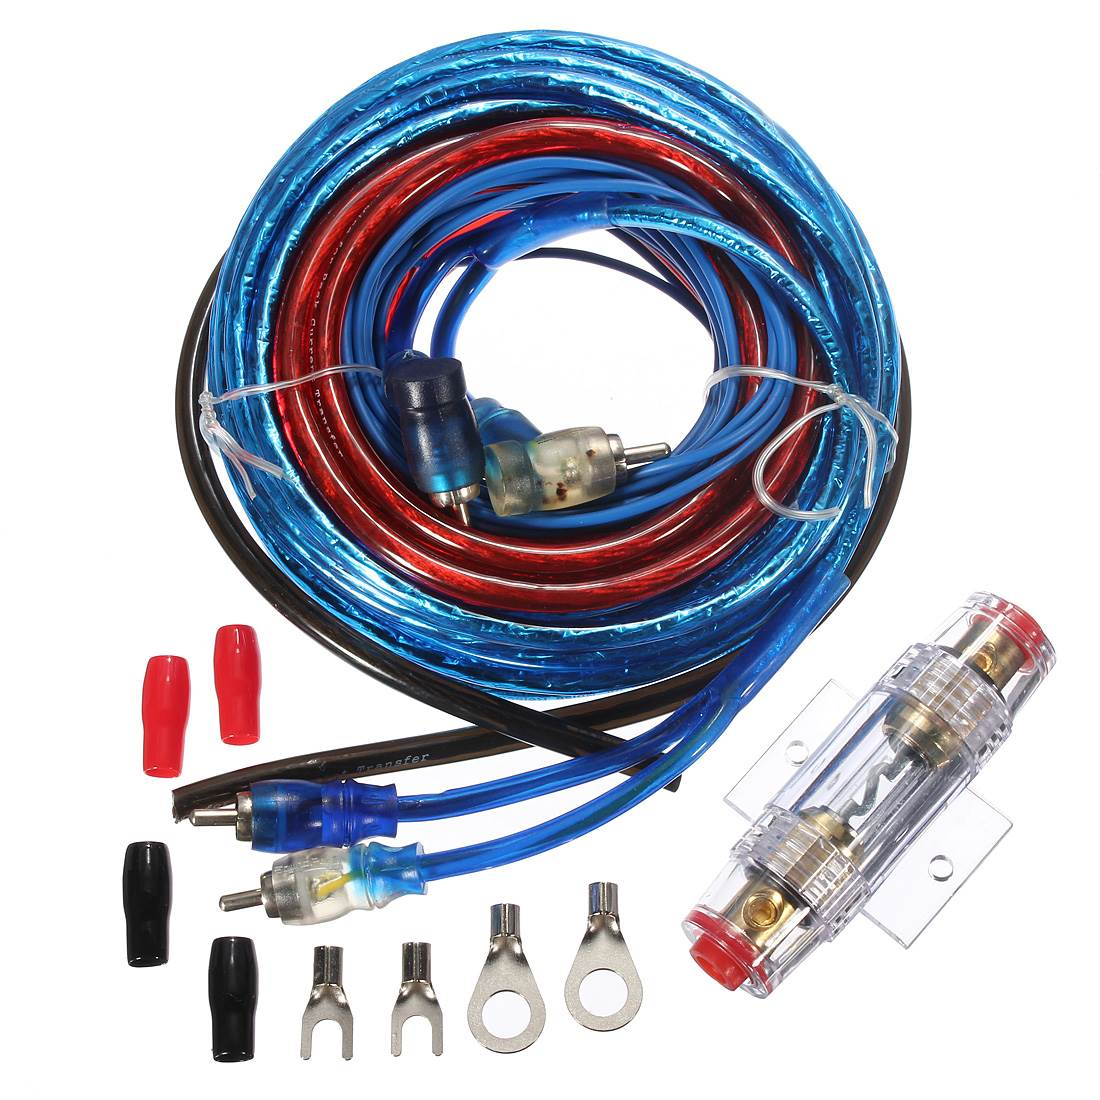 2016 Brand New 8GA 500W Car Subwoofers Amplifier Wiring Complete Cable Speaker Kit Vehicles(China (Mainland))